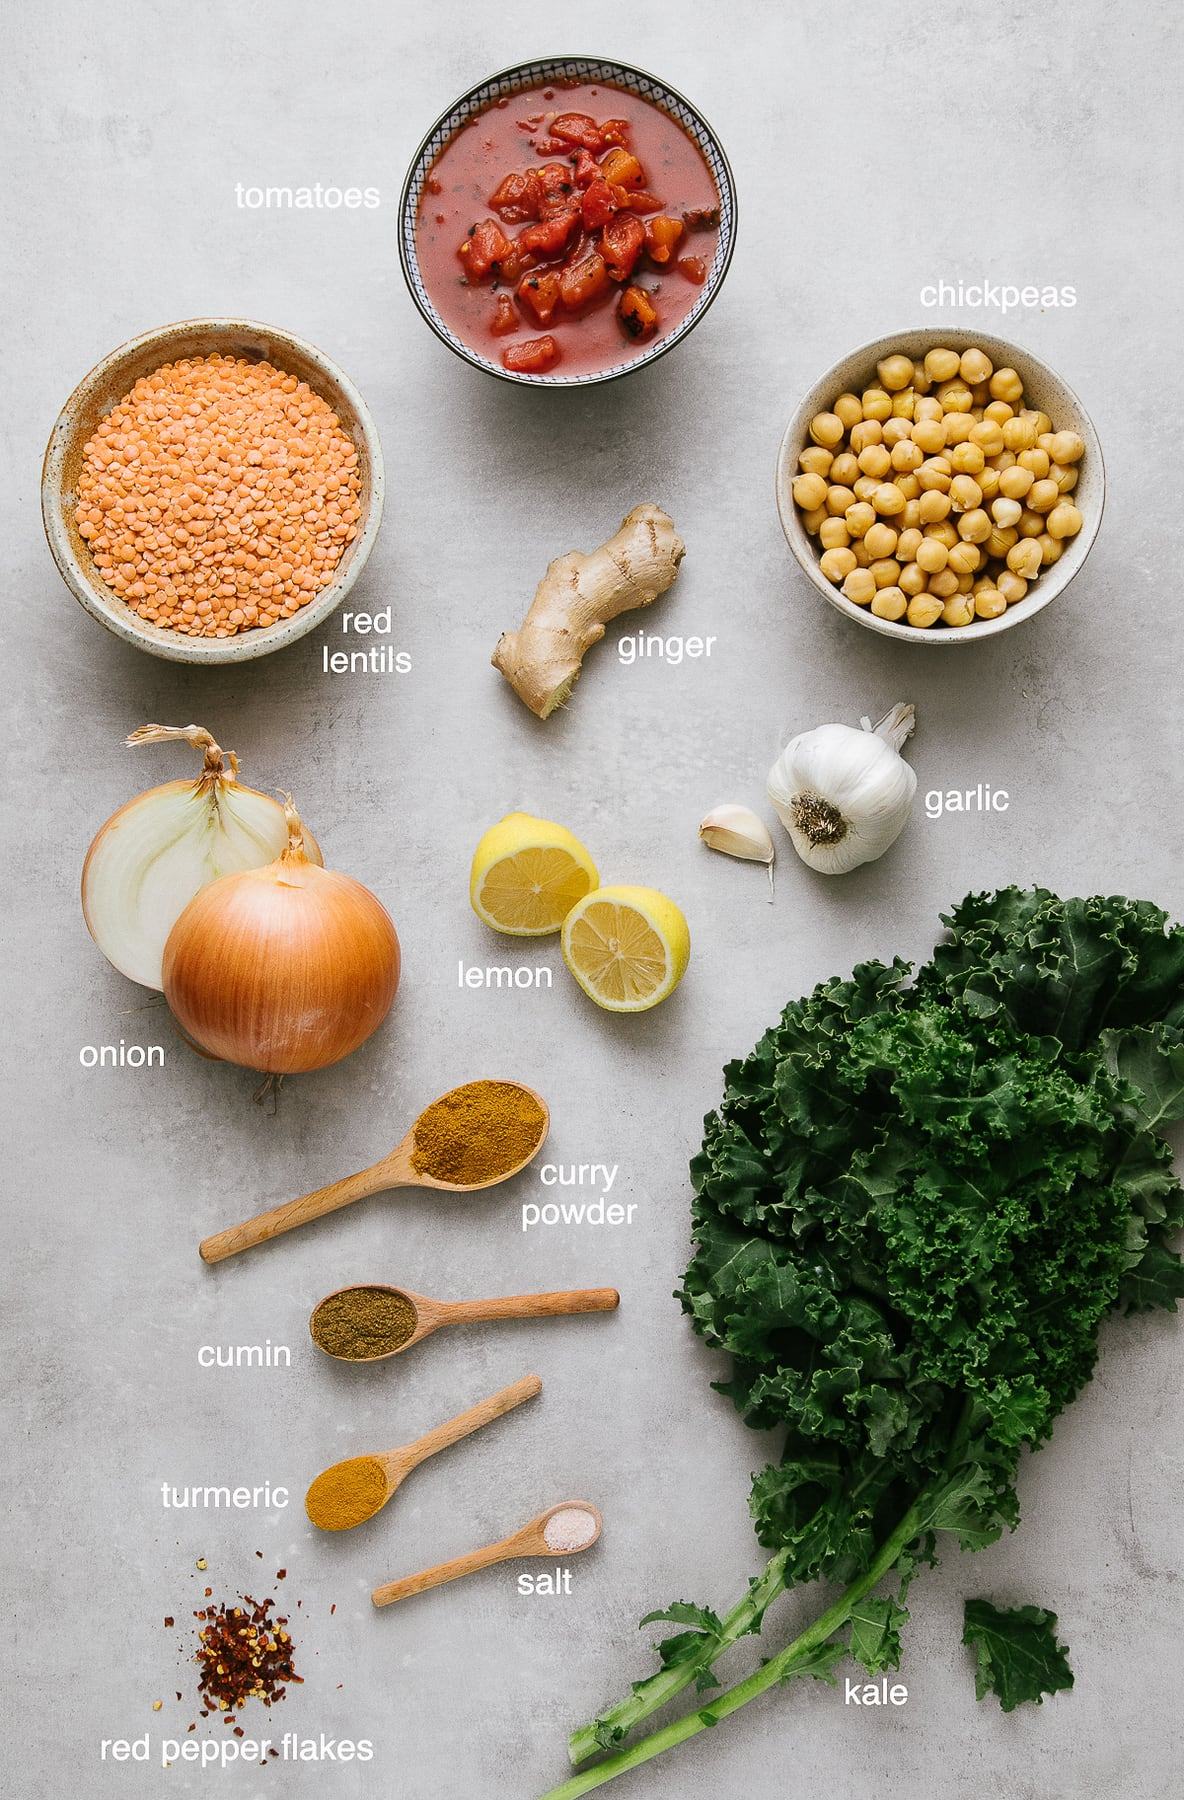 top down view of ingredients used to make healthy red curry lentil stew.